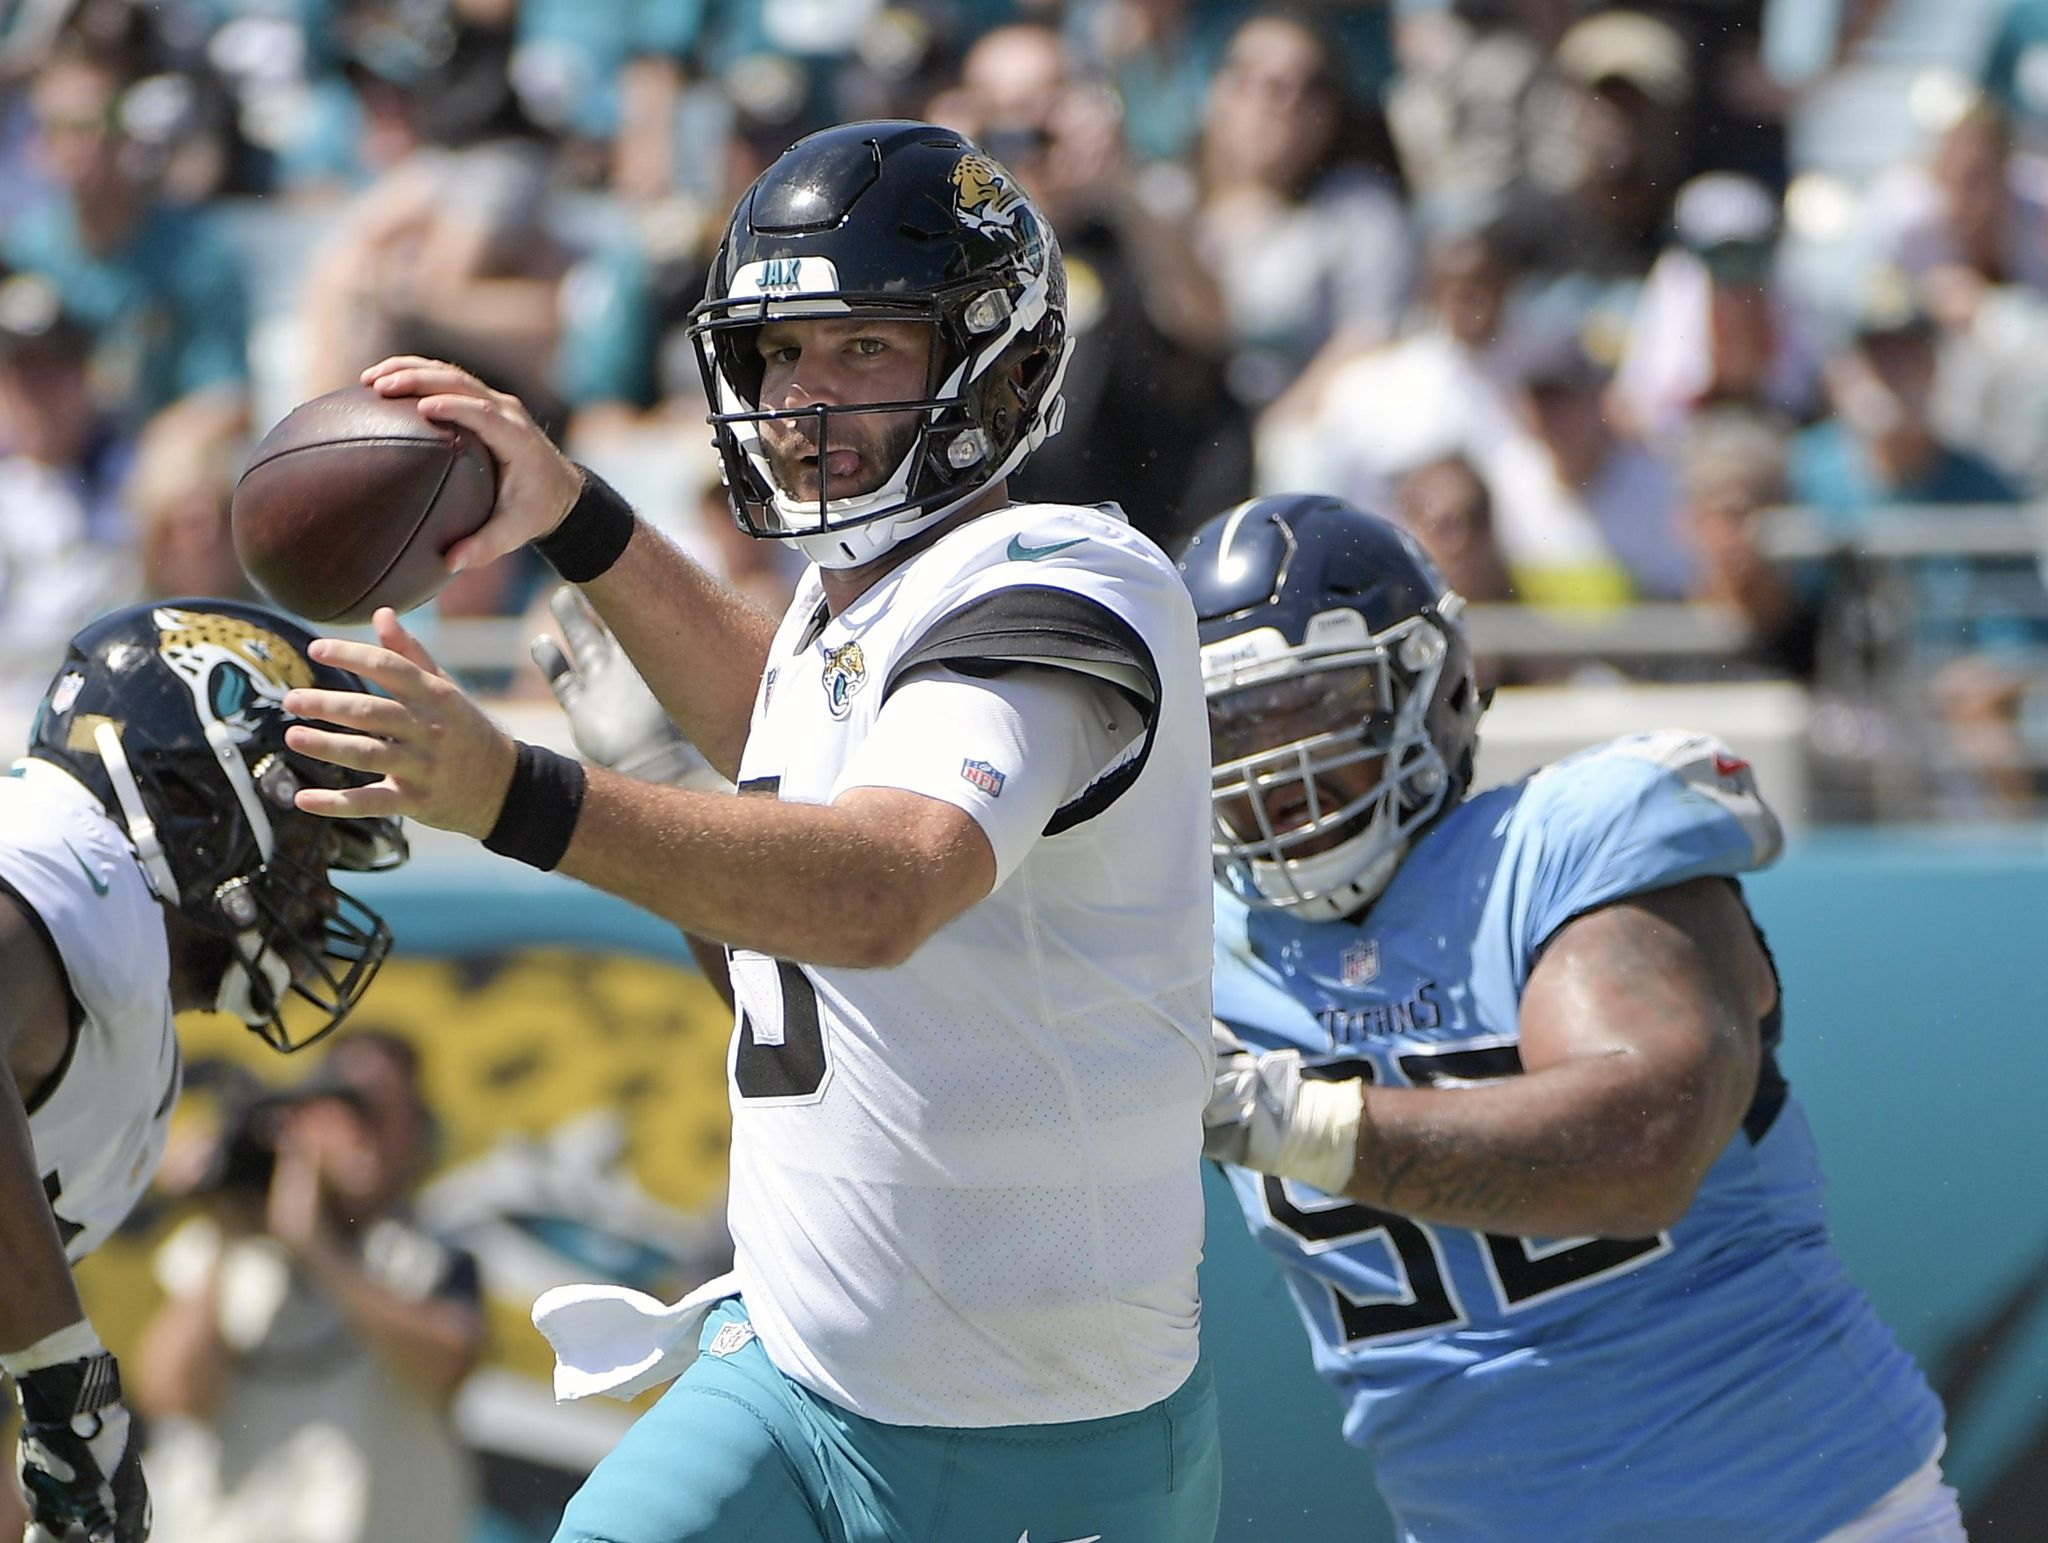 Jaguars 'expressed emotion' after 9-6 loss to rival Titans - Washington Times